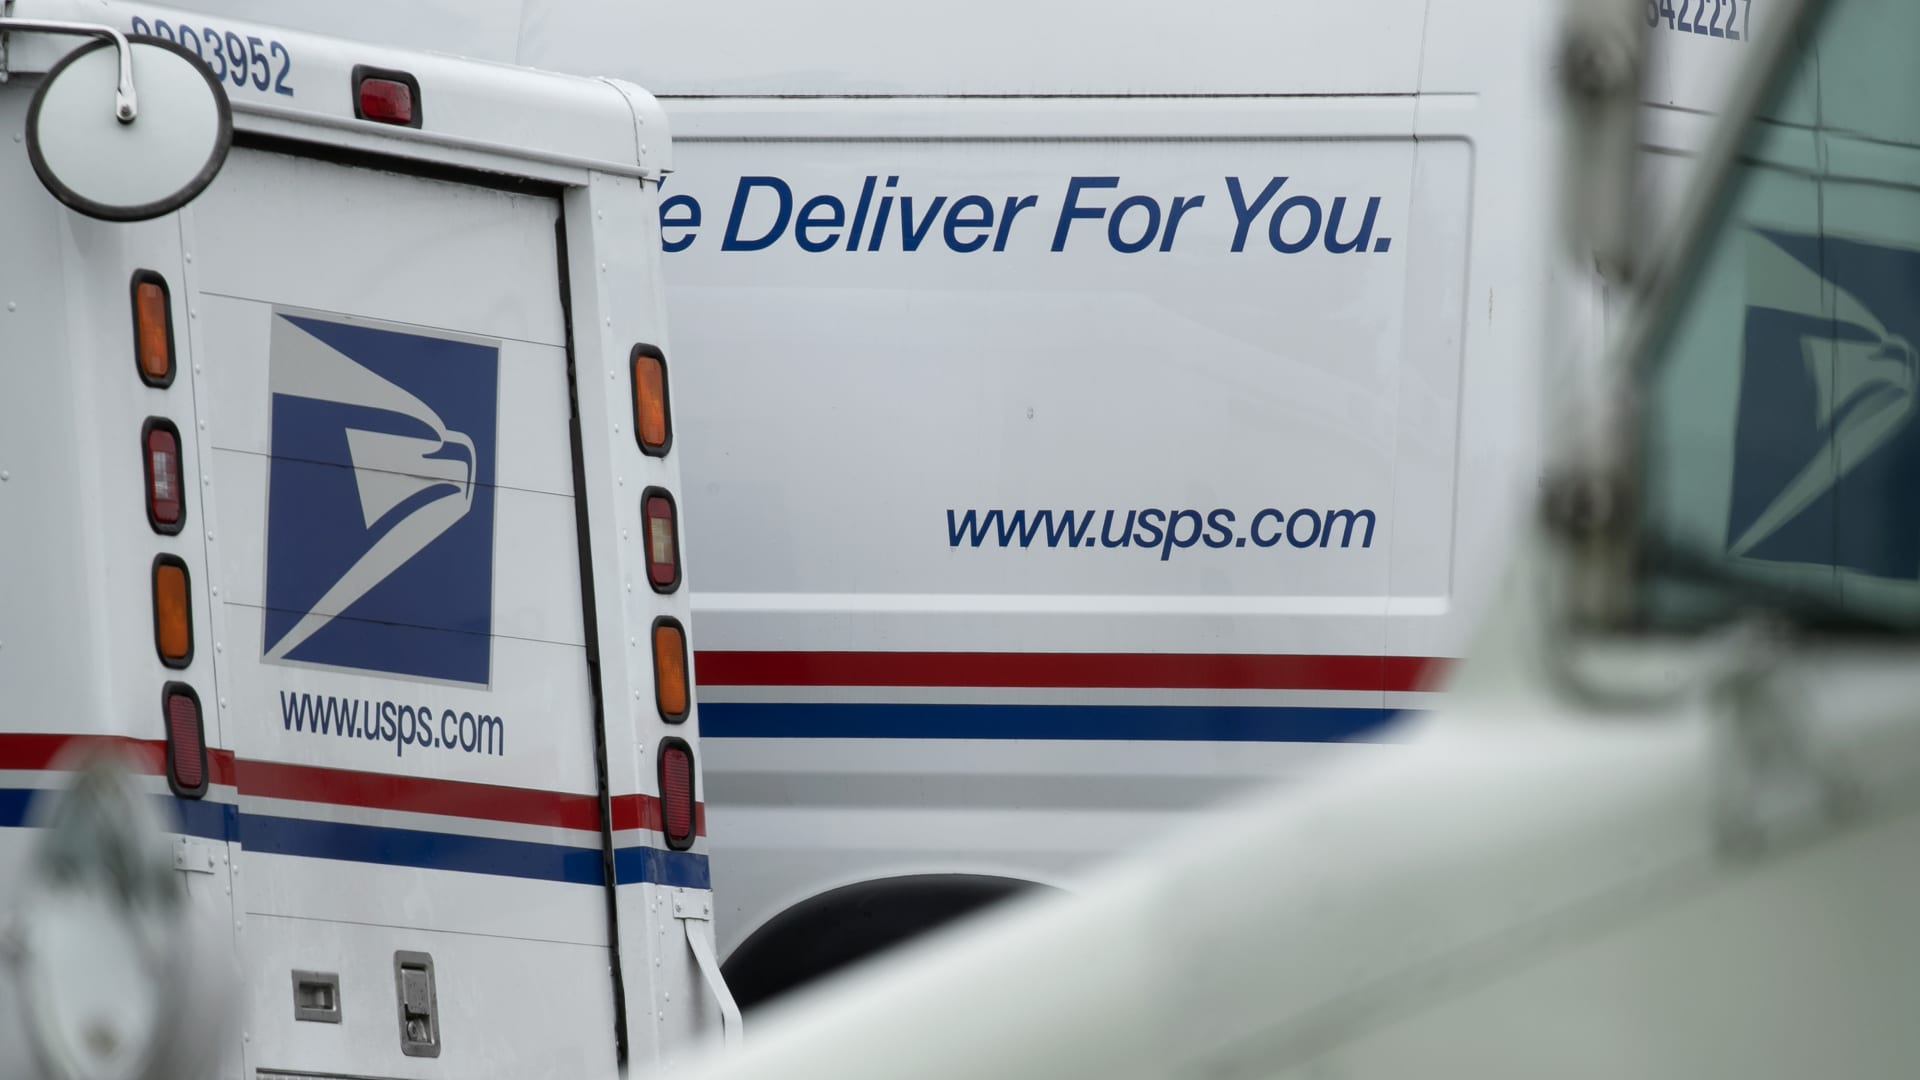 USPS Trucks sit at a U.S. Postal Service (USPS) facility in Elkridge, Maryland, U.S., on Sunday, Aug. 16, 2020.